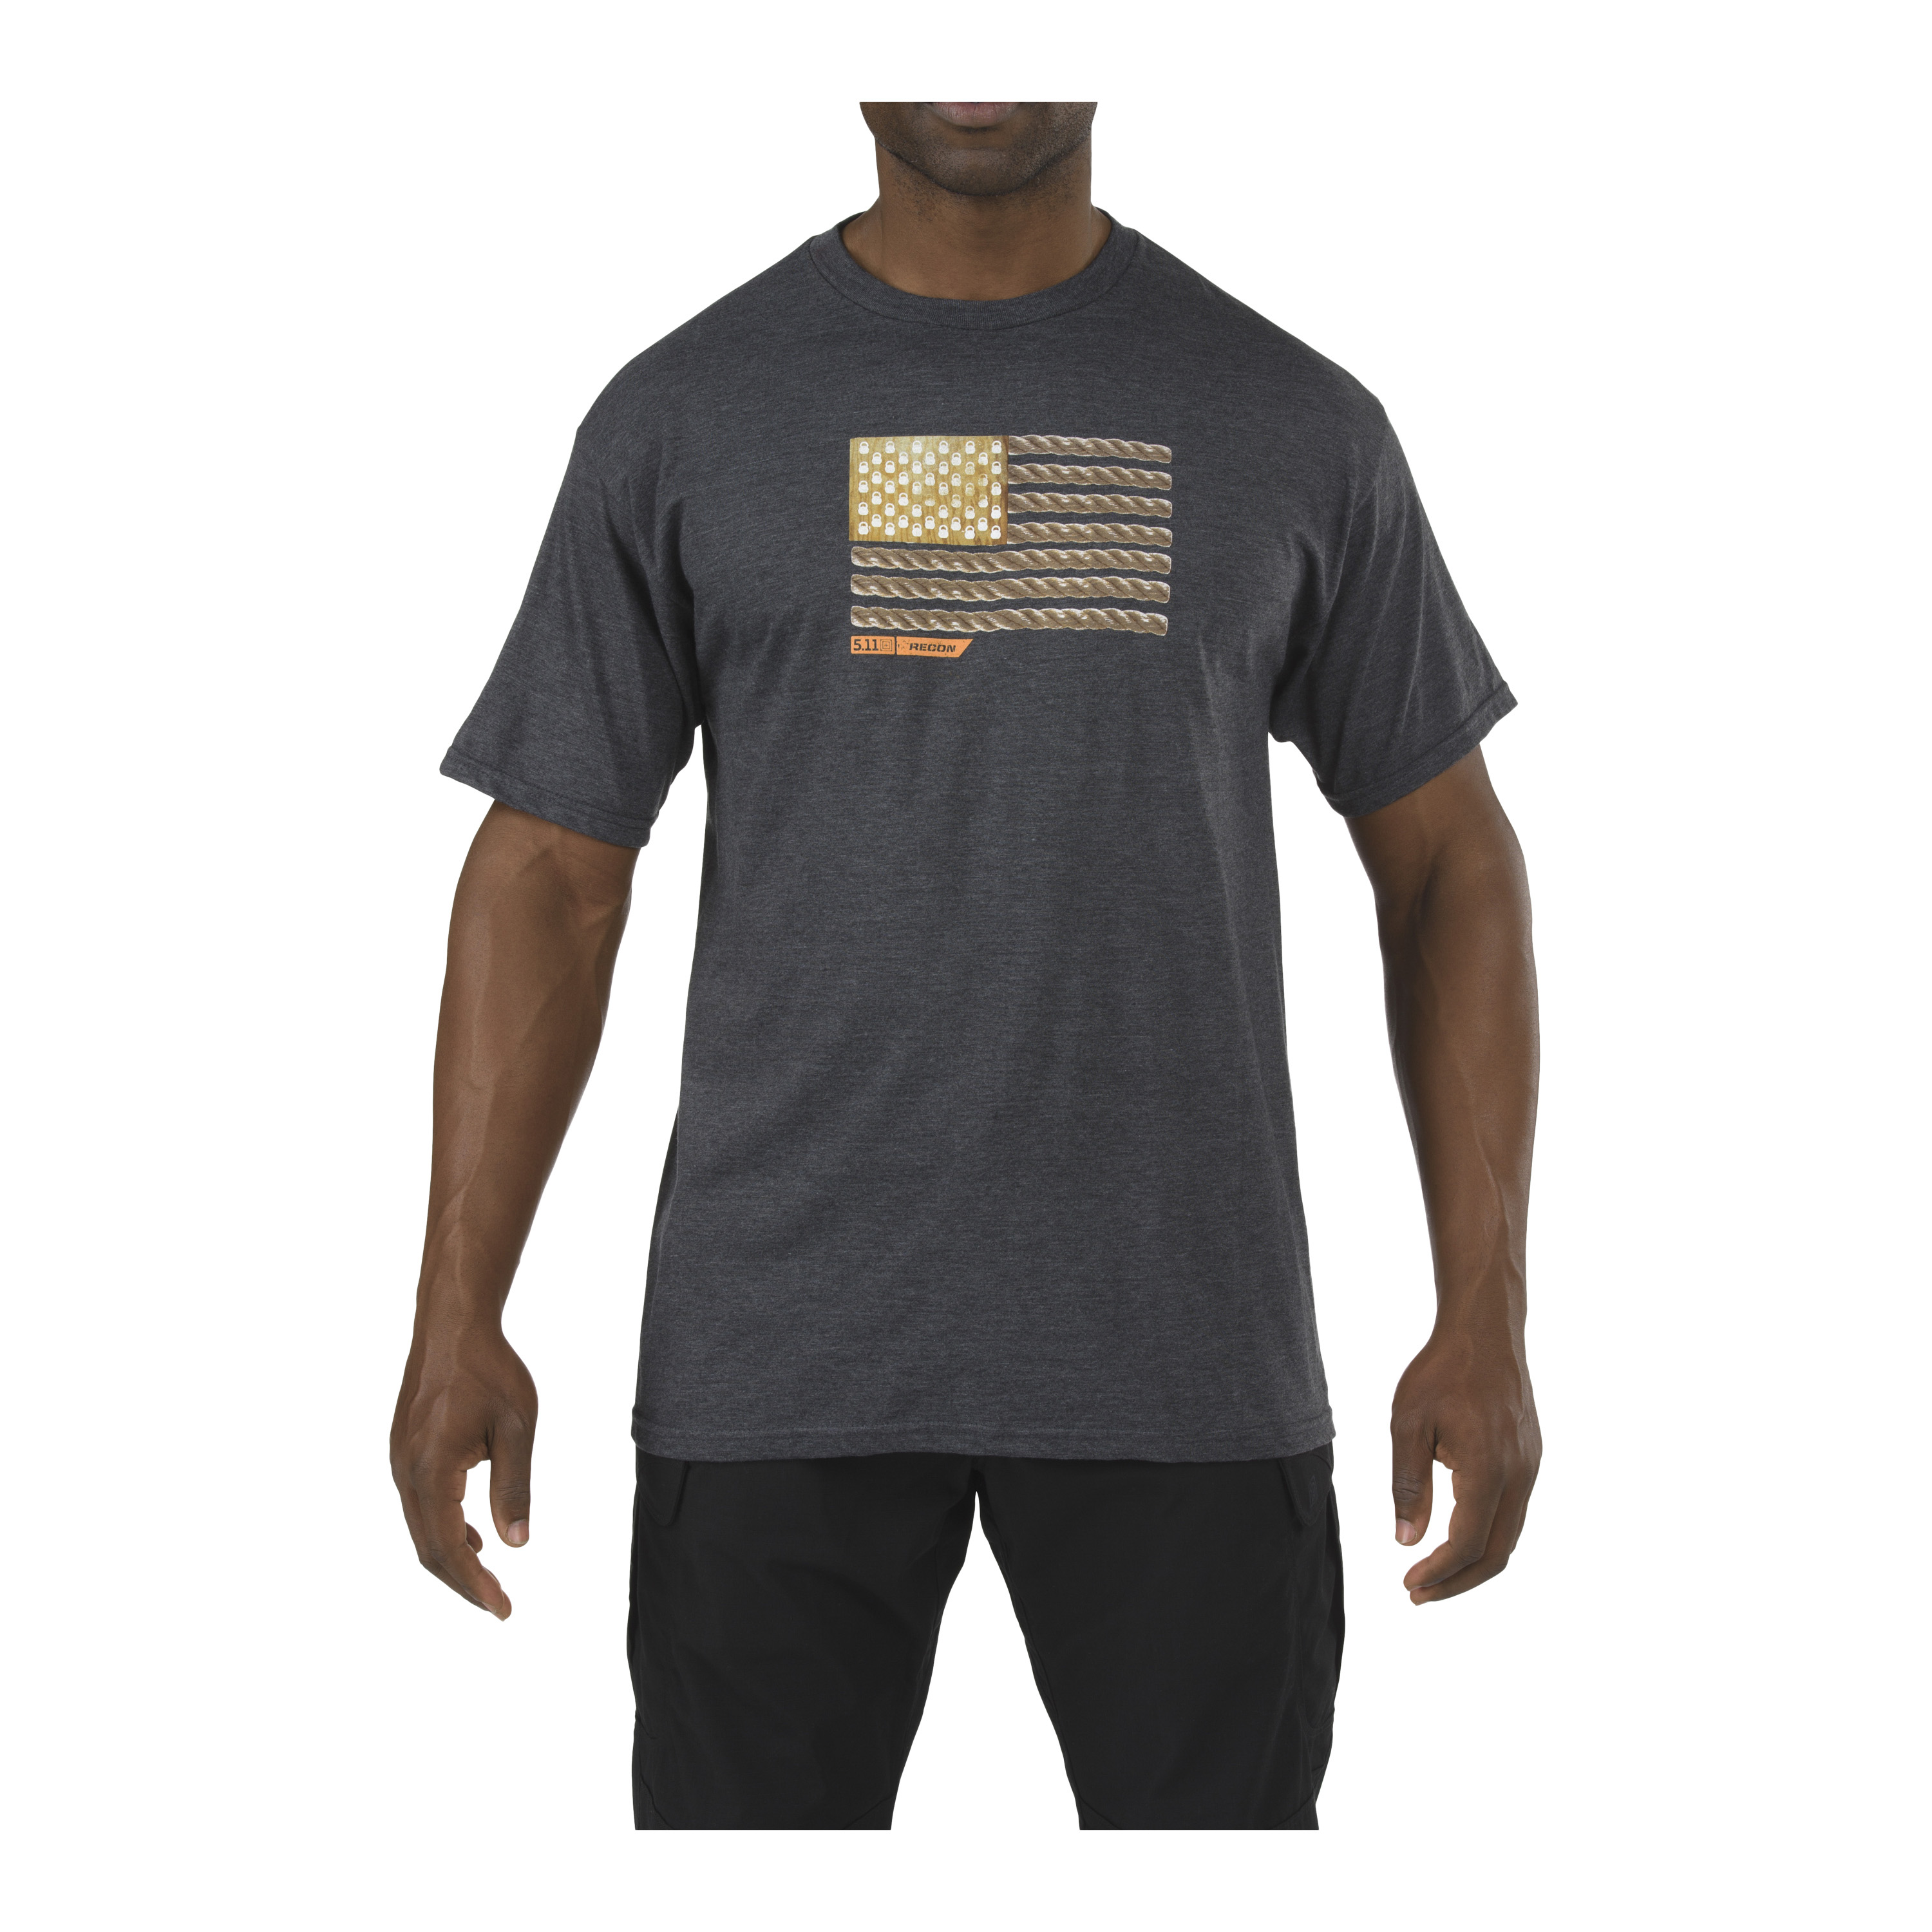 5.11 T-Shirt Recon Rope Ready gris